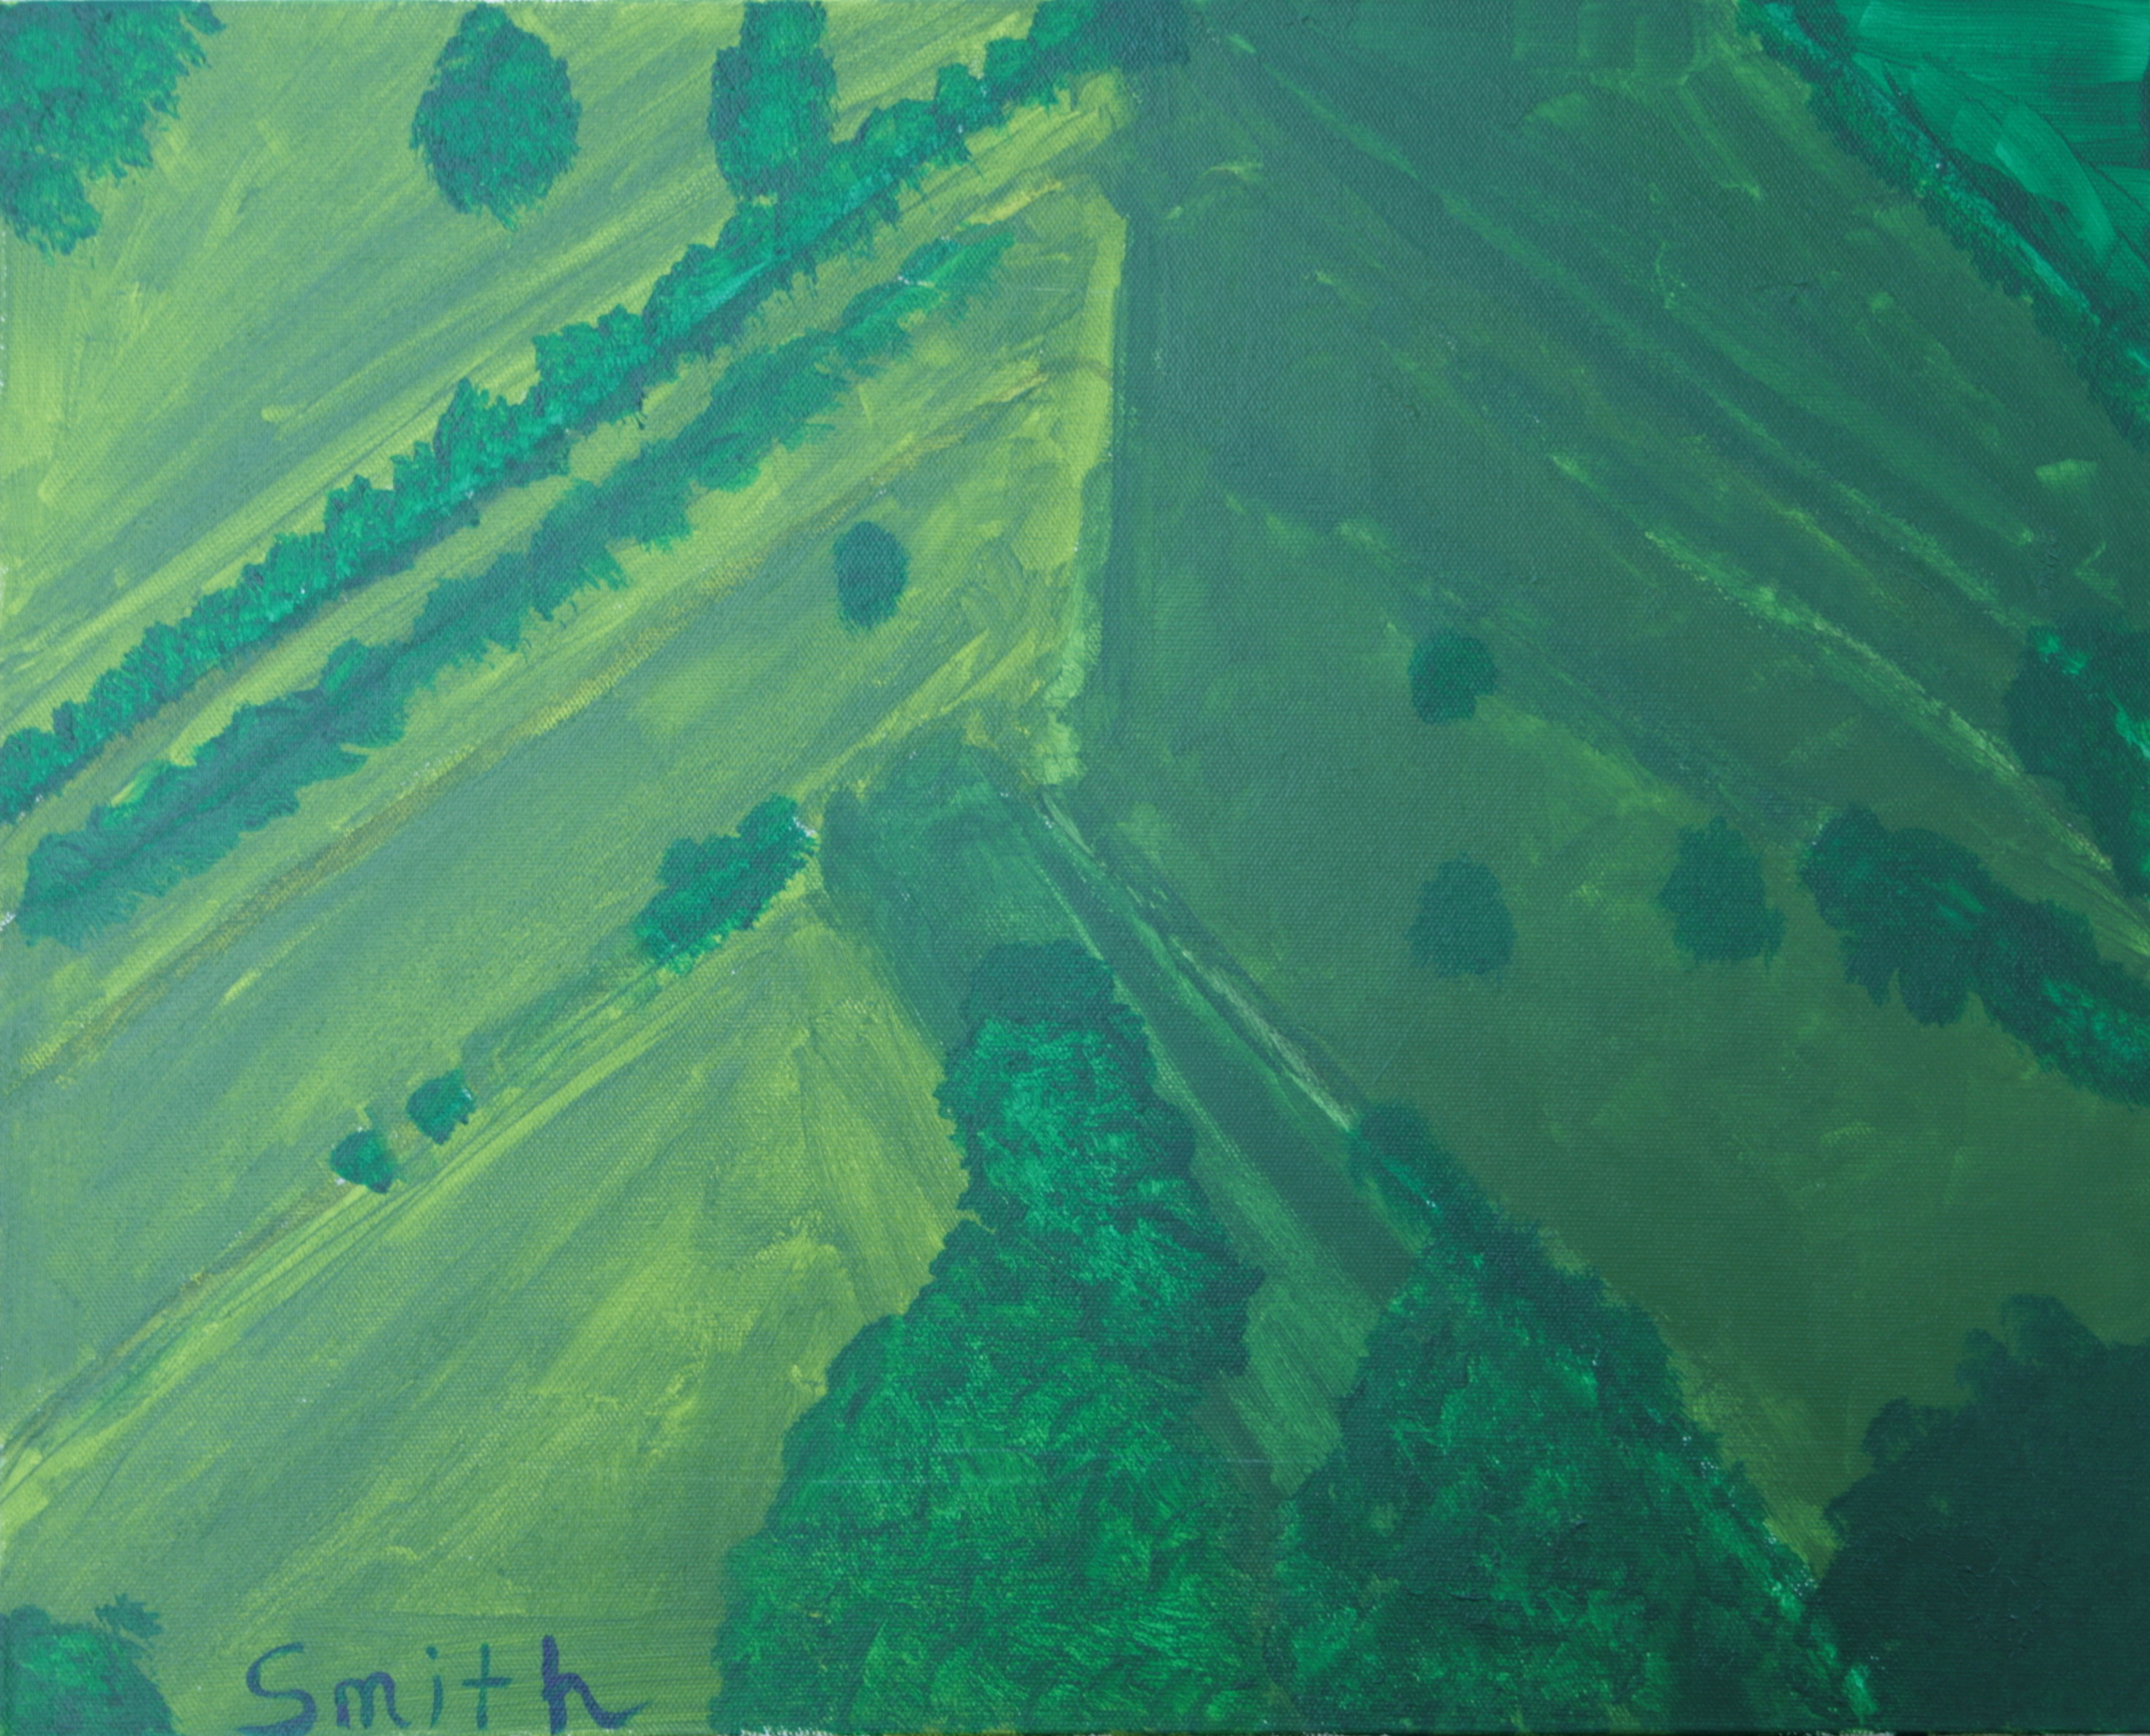 (1) Abstract Hills